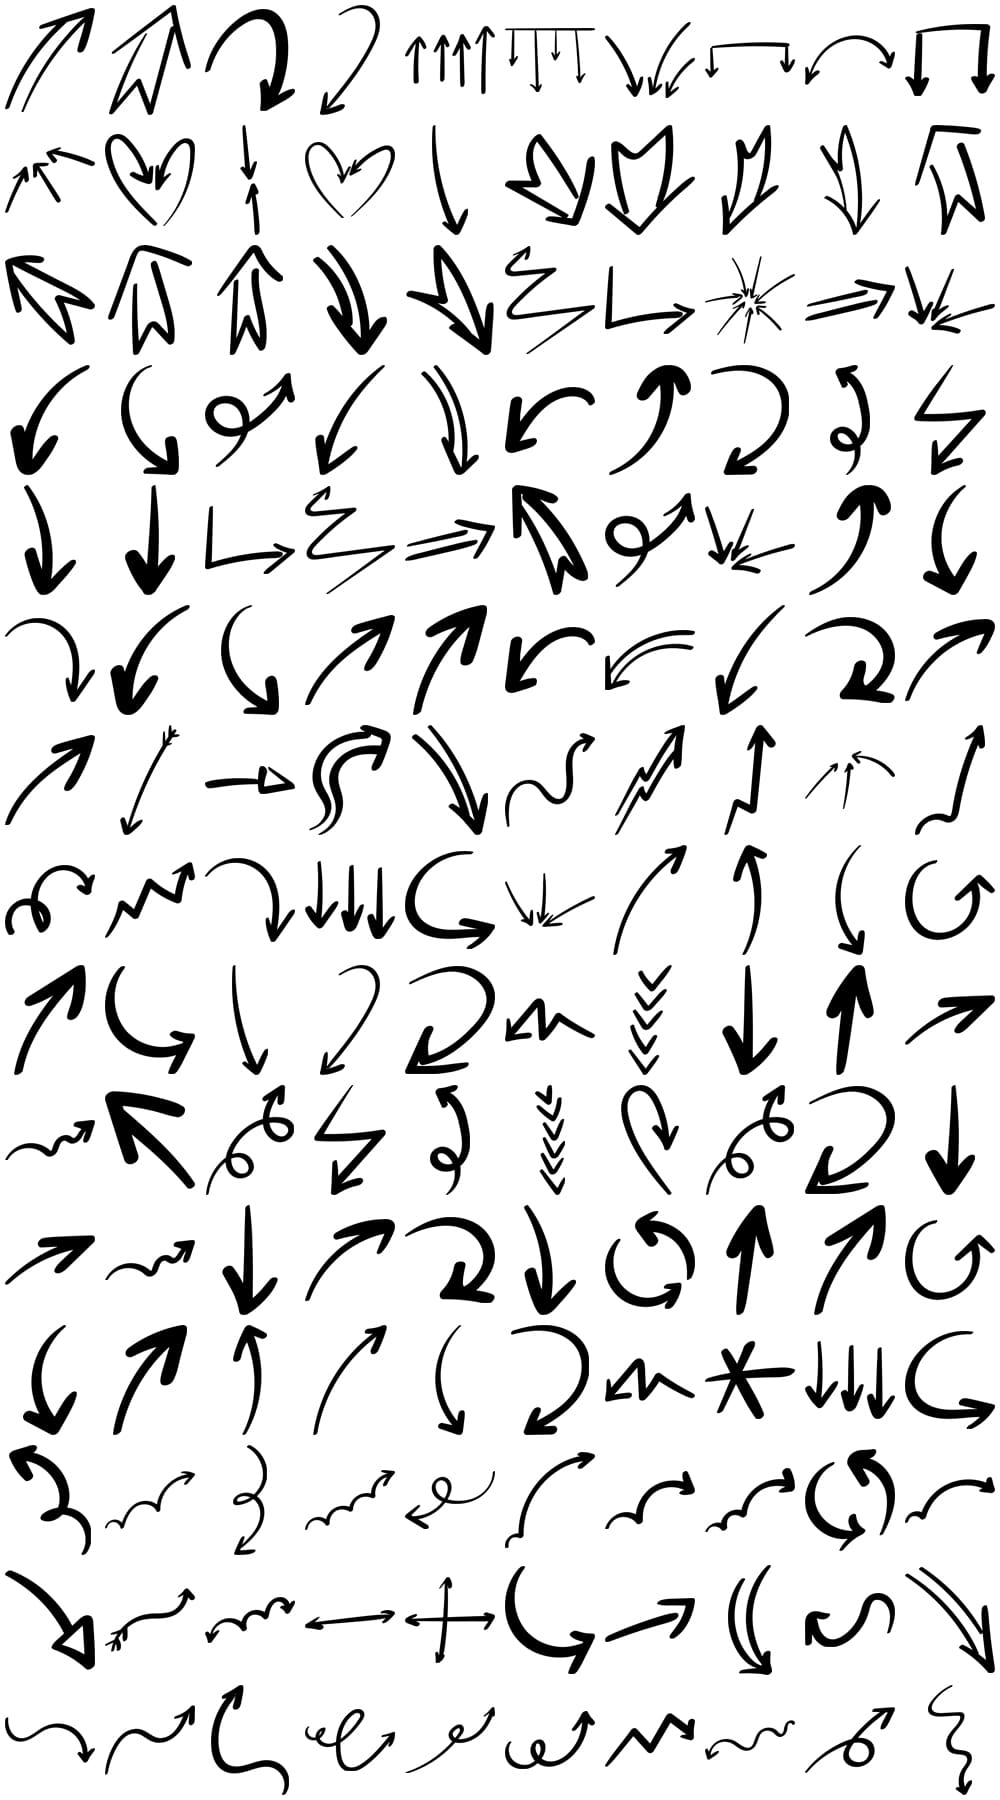 150 Free Hand Drawn Arrows Without Attribution